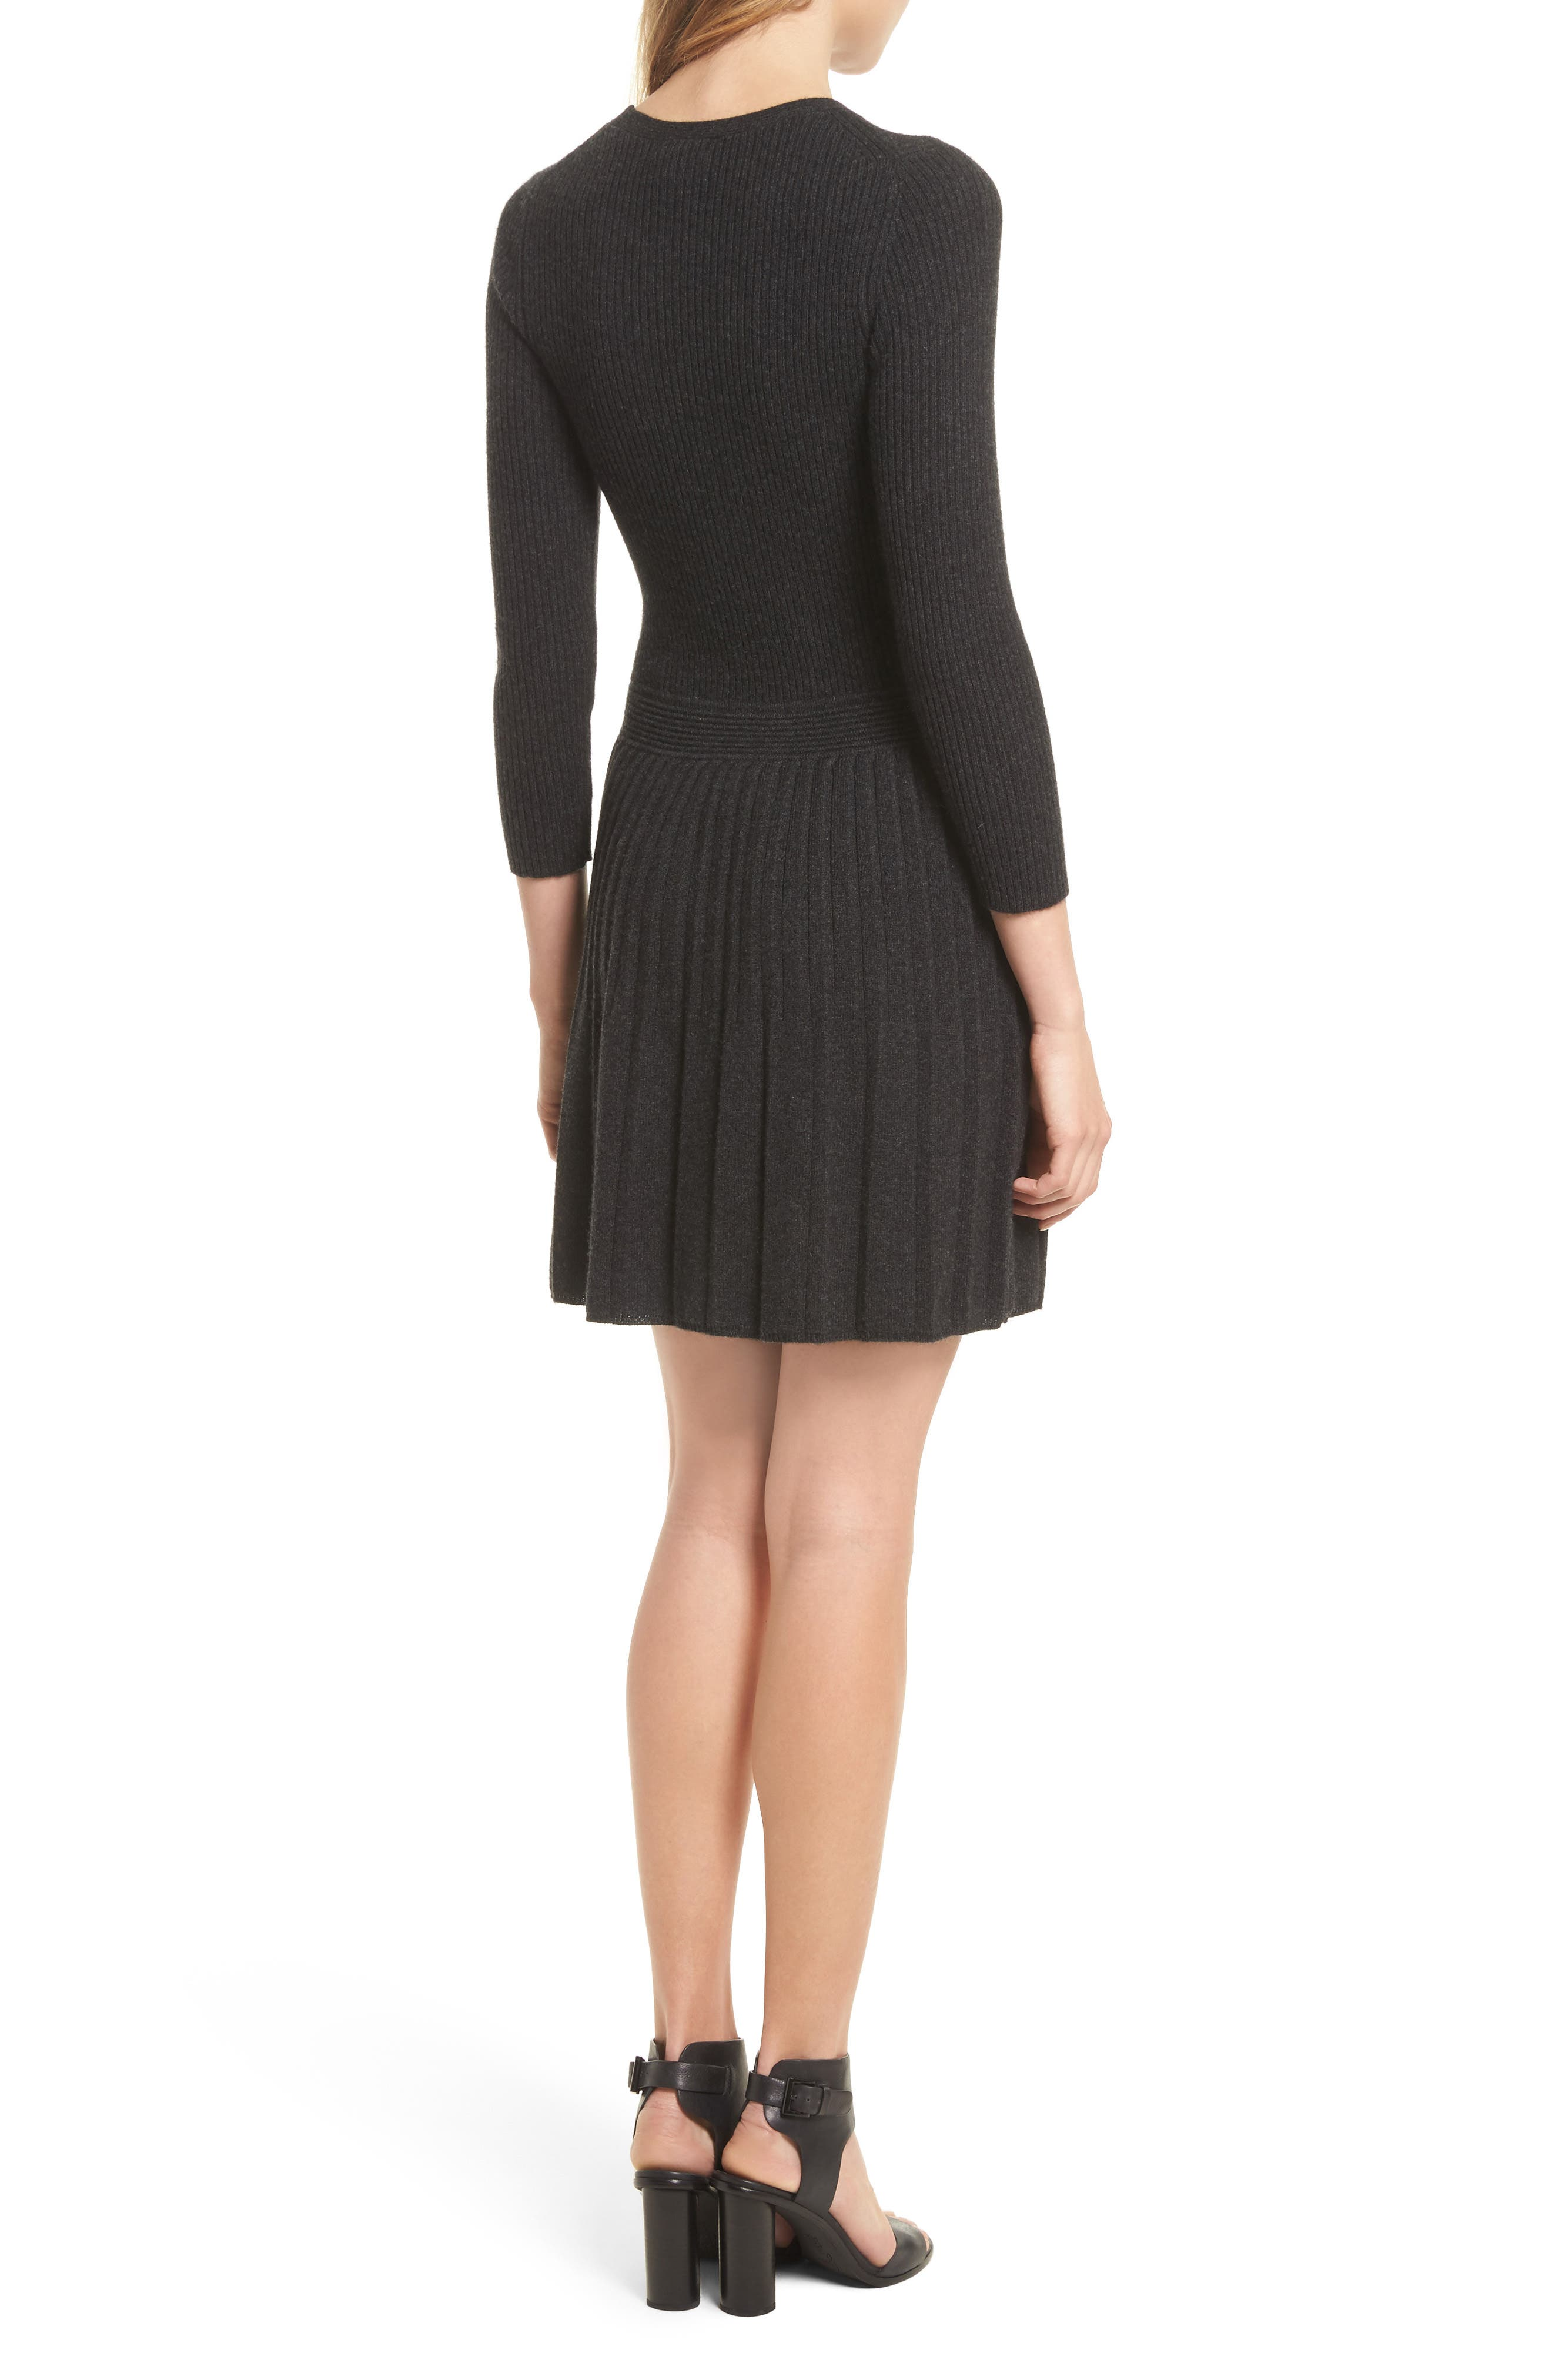 Peronne B Knit Wool & Cashmere Fit & Flare Dress,                             Alternate thumbnail 2, color,                             071